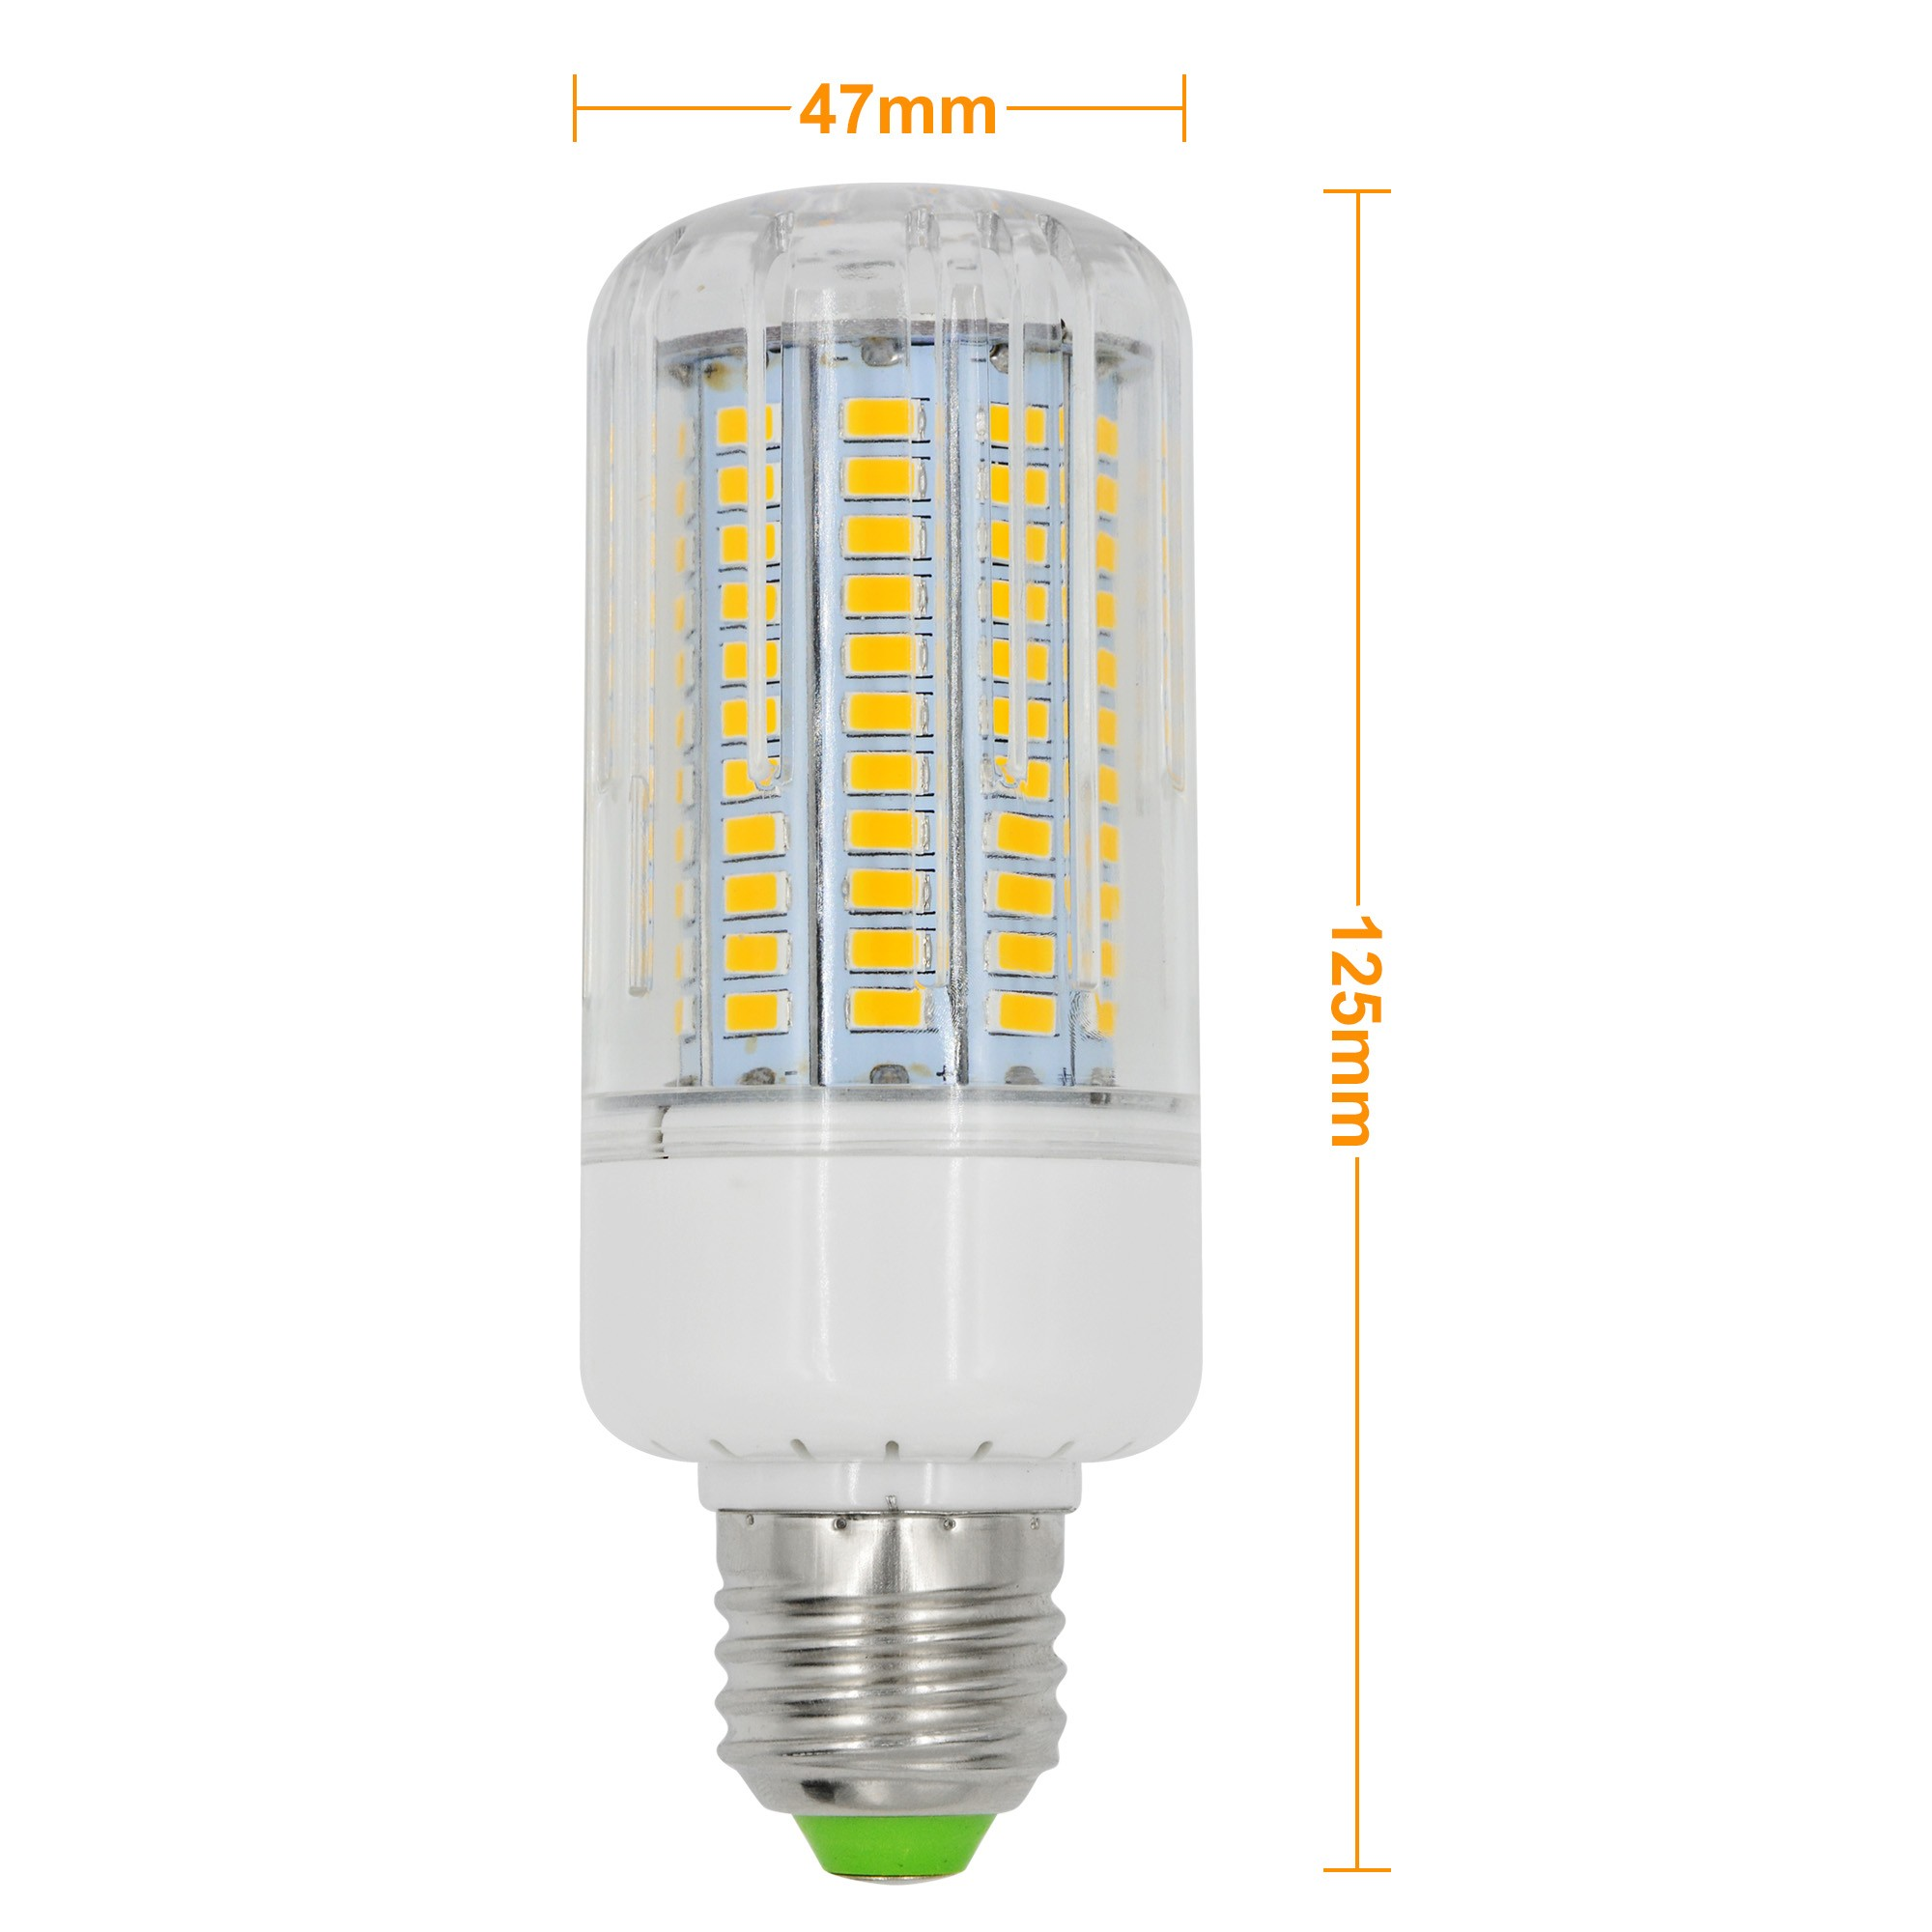 Mengsled Mengs E27 18w Led Dimmable Corn Light 130x 5736 Smd Led Bulb Lamp Ac 220 240v In